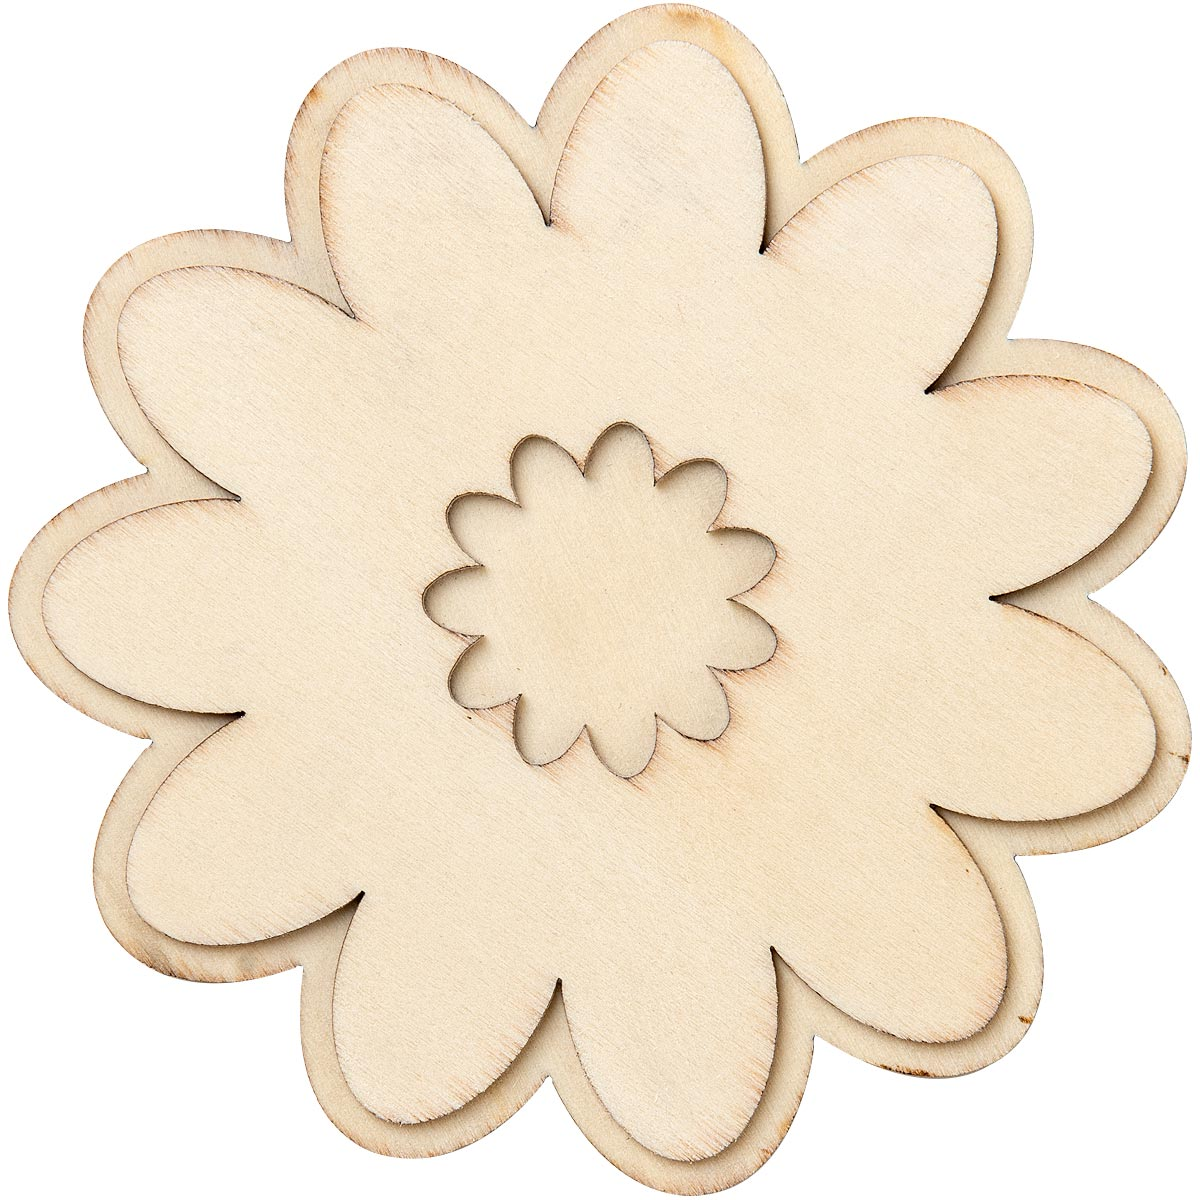 Plaid ® Wood Surfaces - Unpainted Layered Shapes - Fun Flower